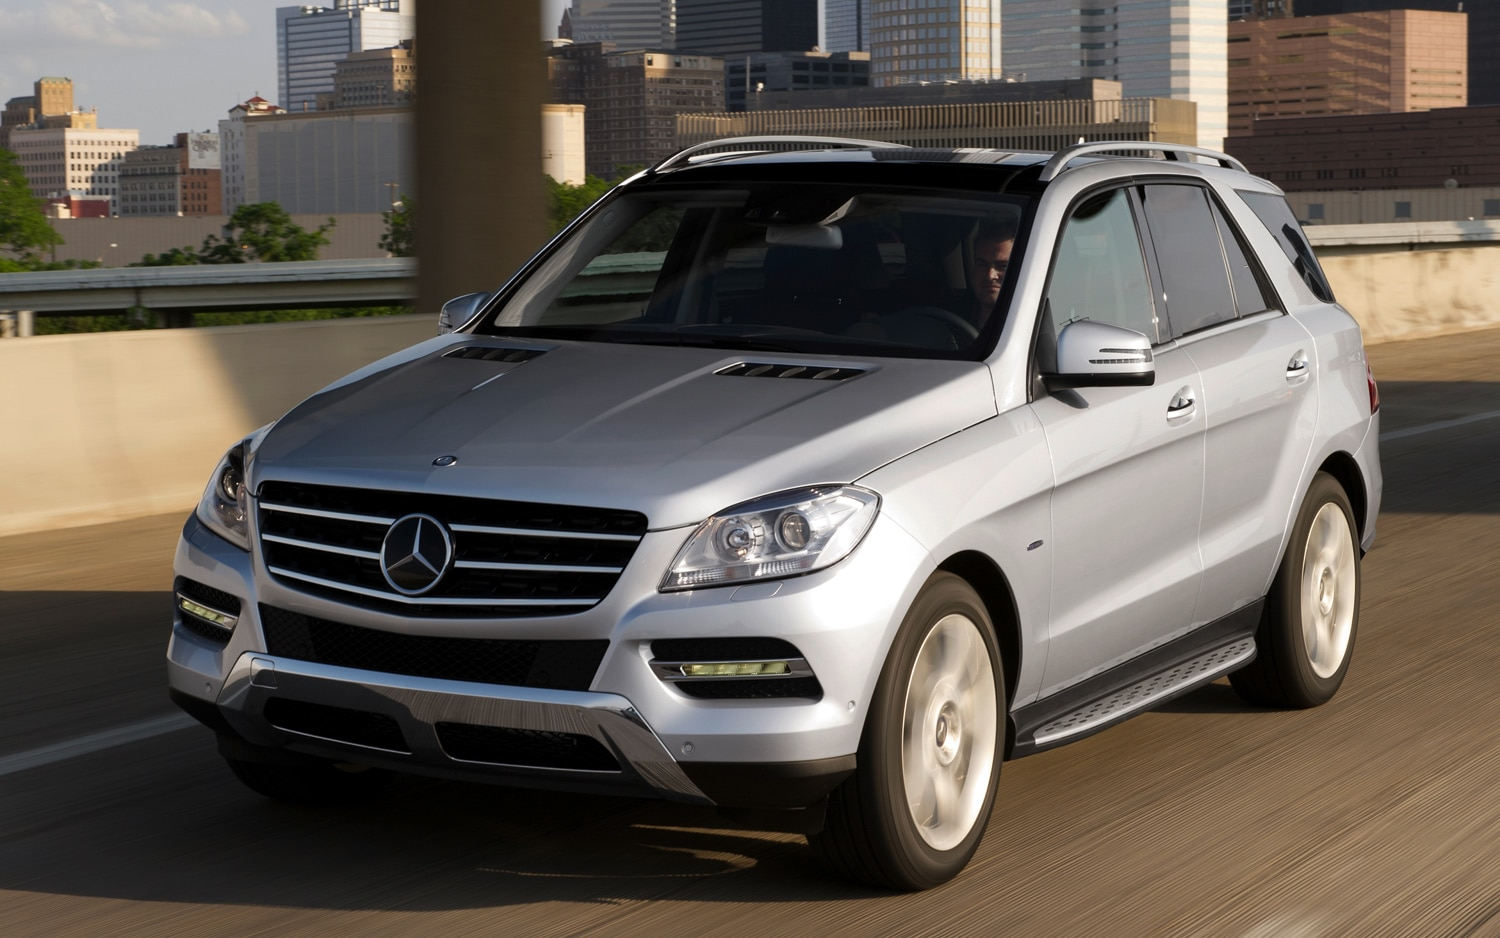 2012 Mercedes Benz M Class In Motion Front View